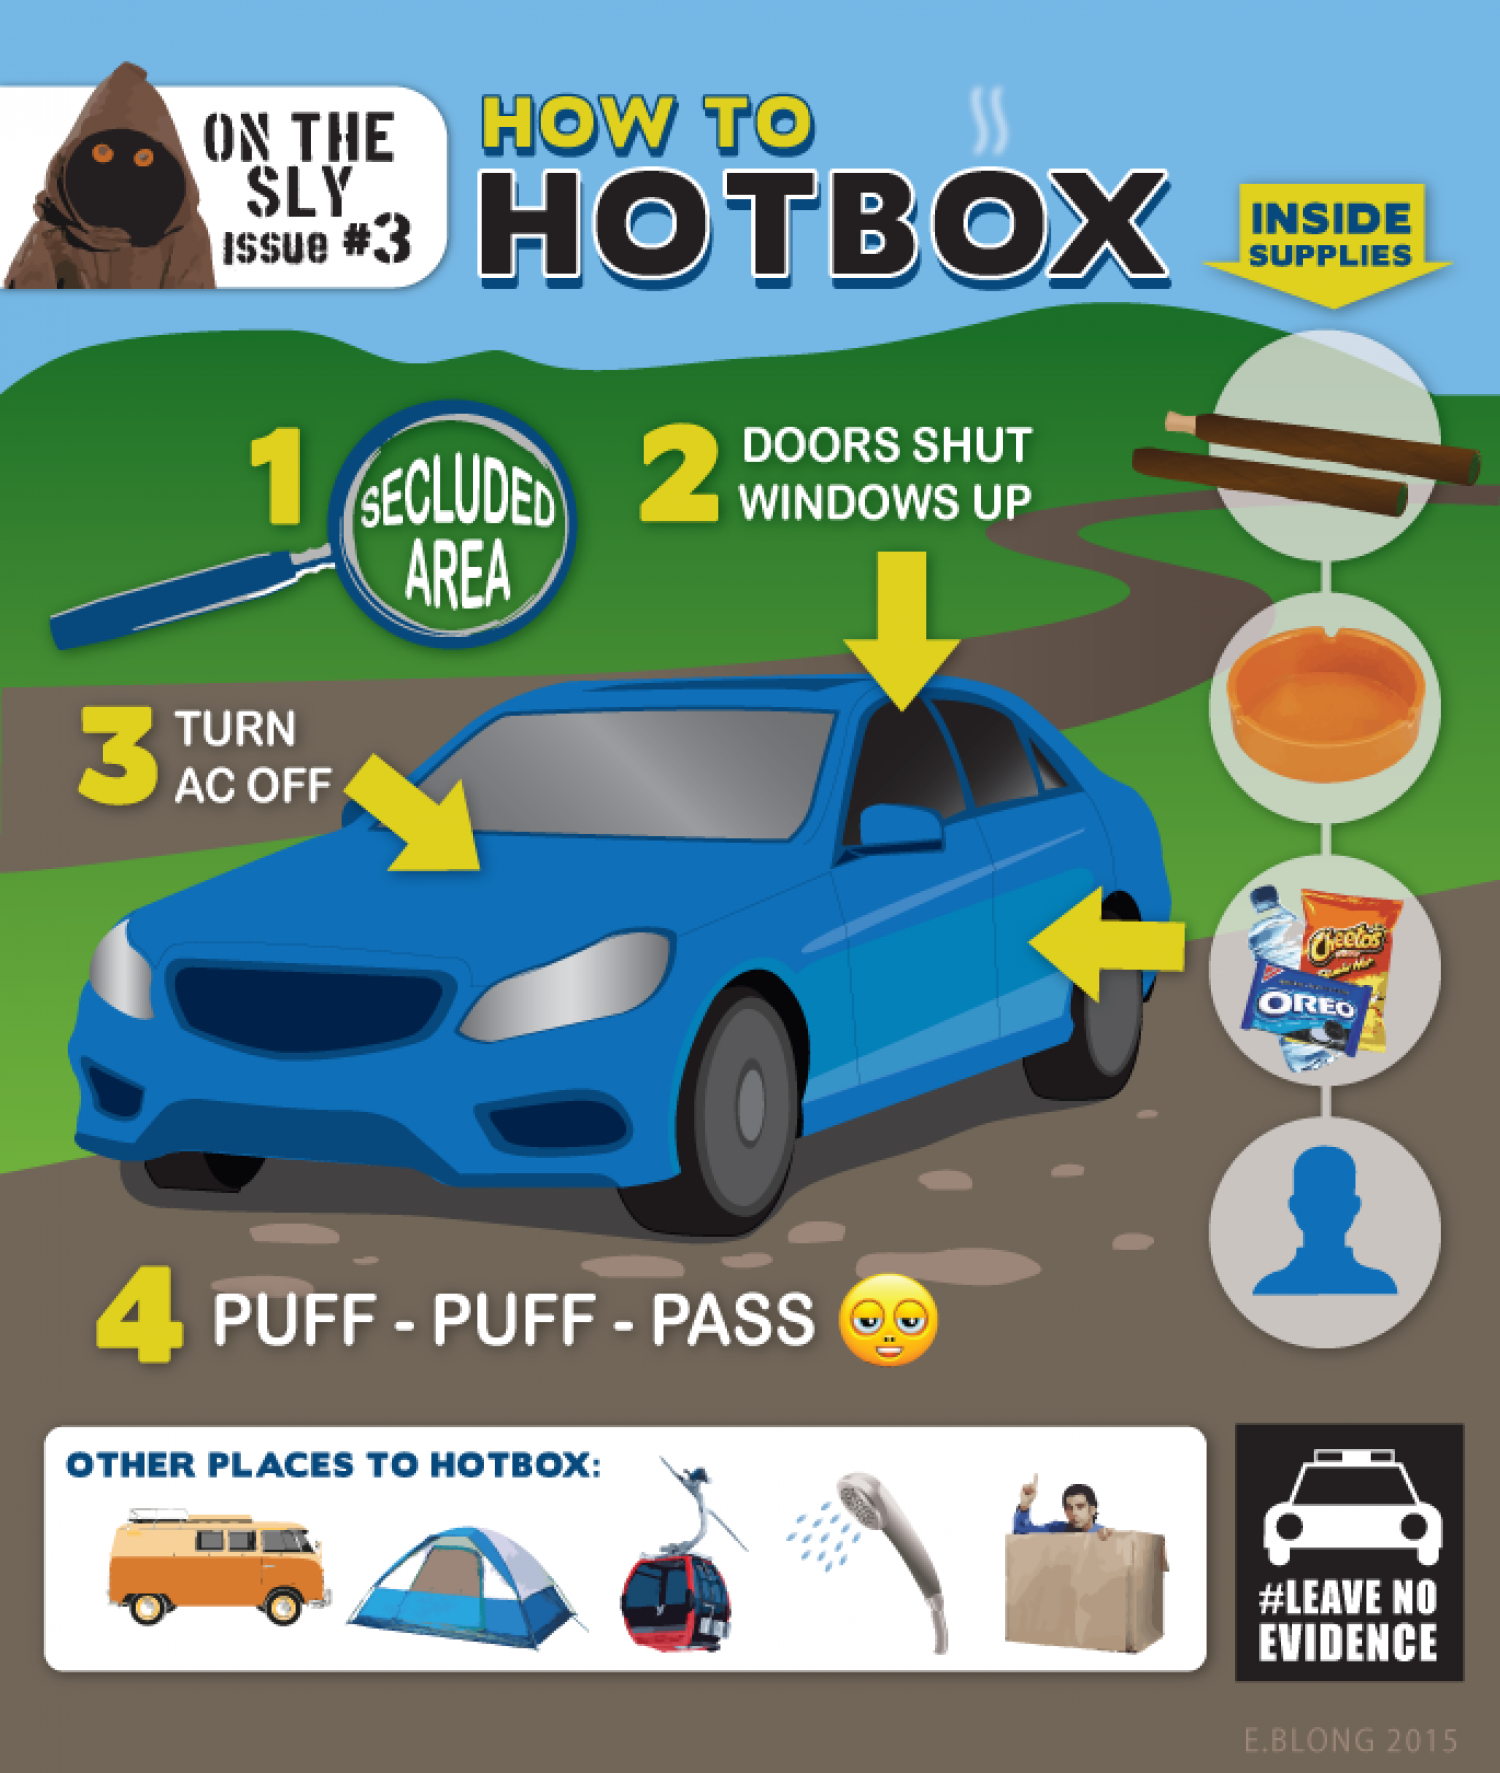 How to Hot Box Infographic